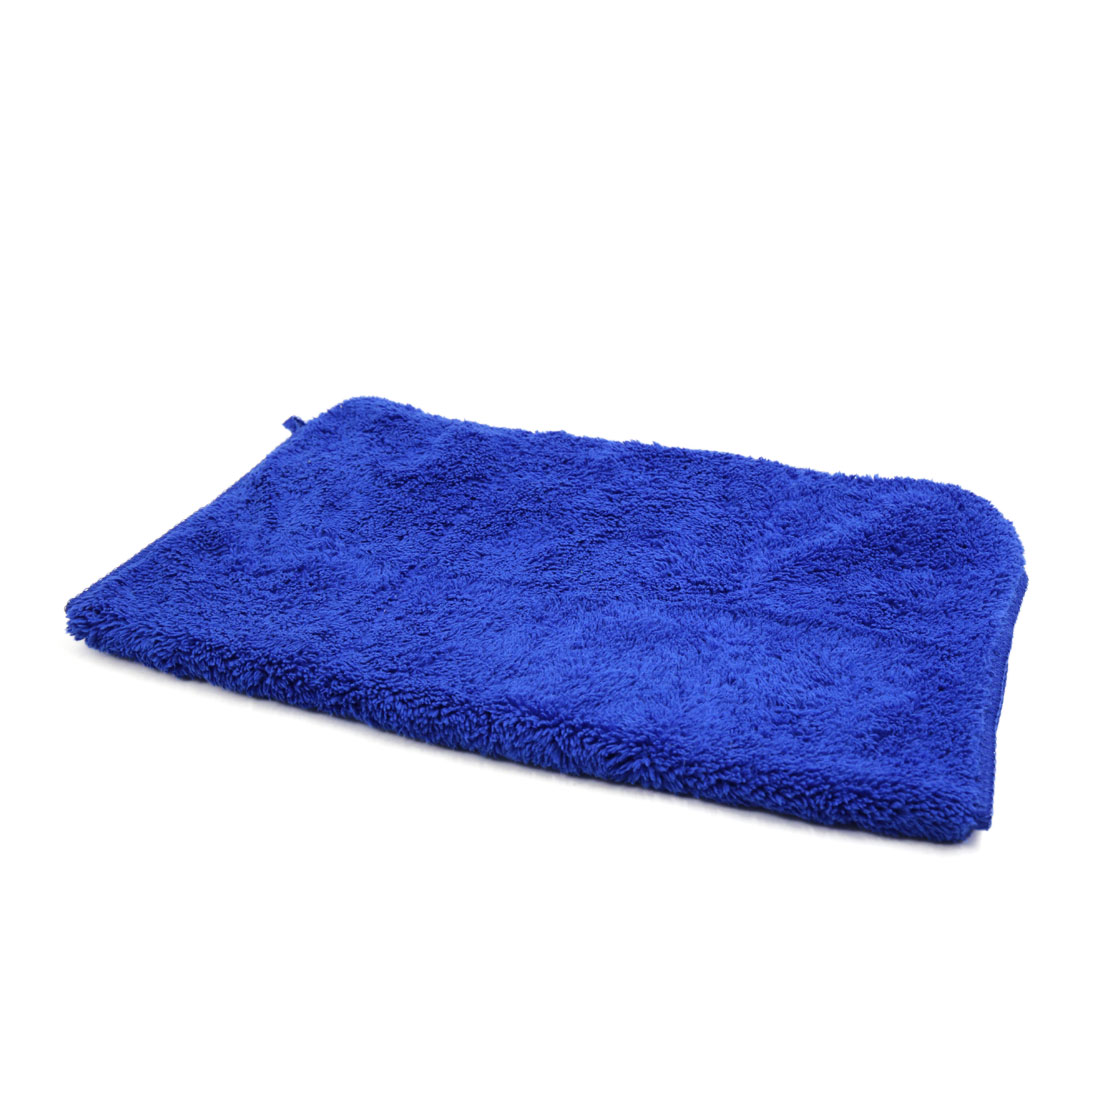 Blue Multi-purpose Car Vehicle Body Cleaning Washing Cloth Towel 40cm x 30cm